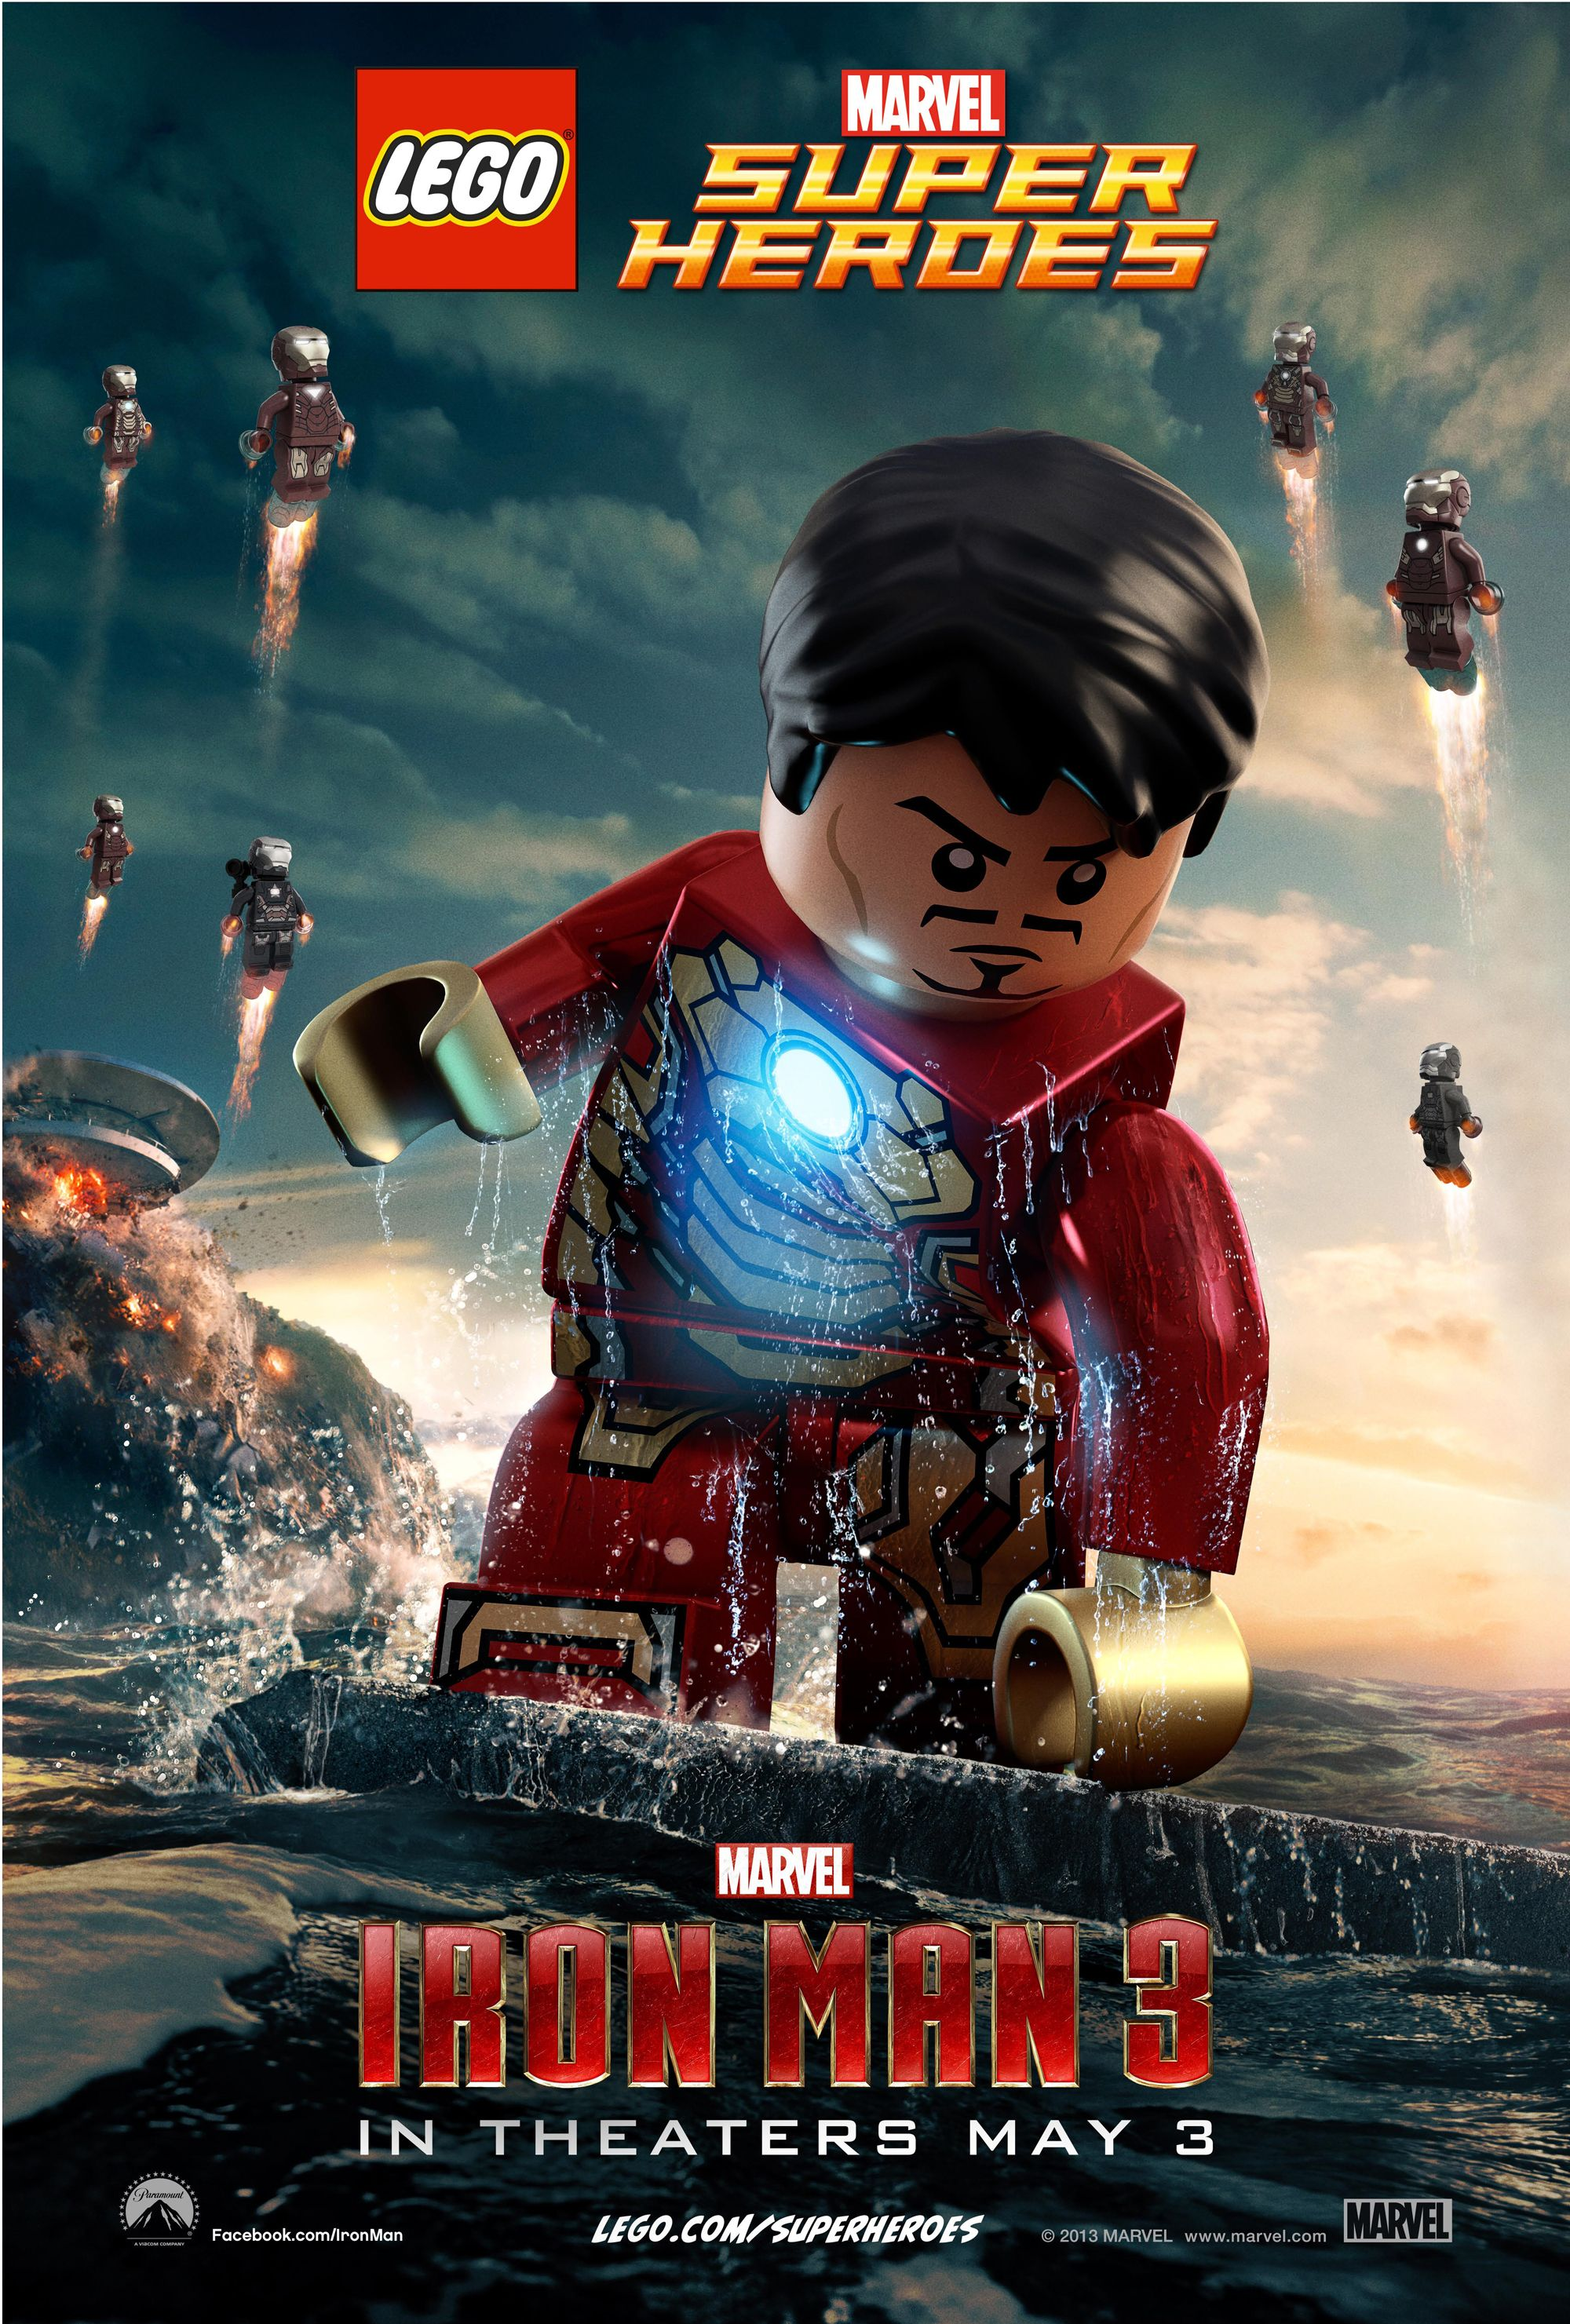 Iron man 3 lego posters iron man 3 stars robert downey jr - Lego iron man 3 ...